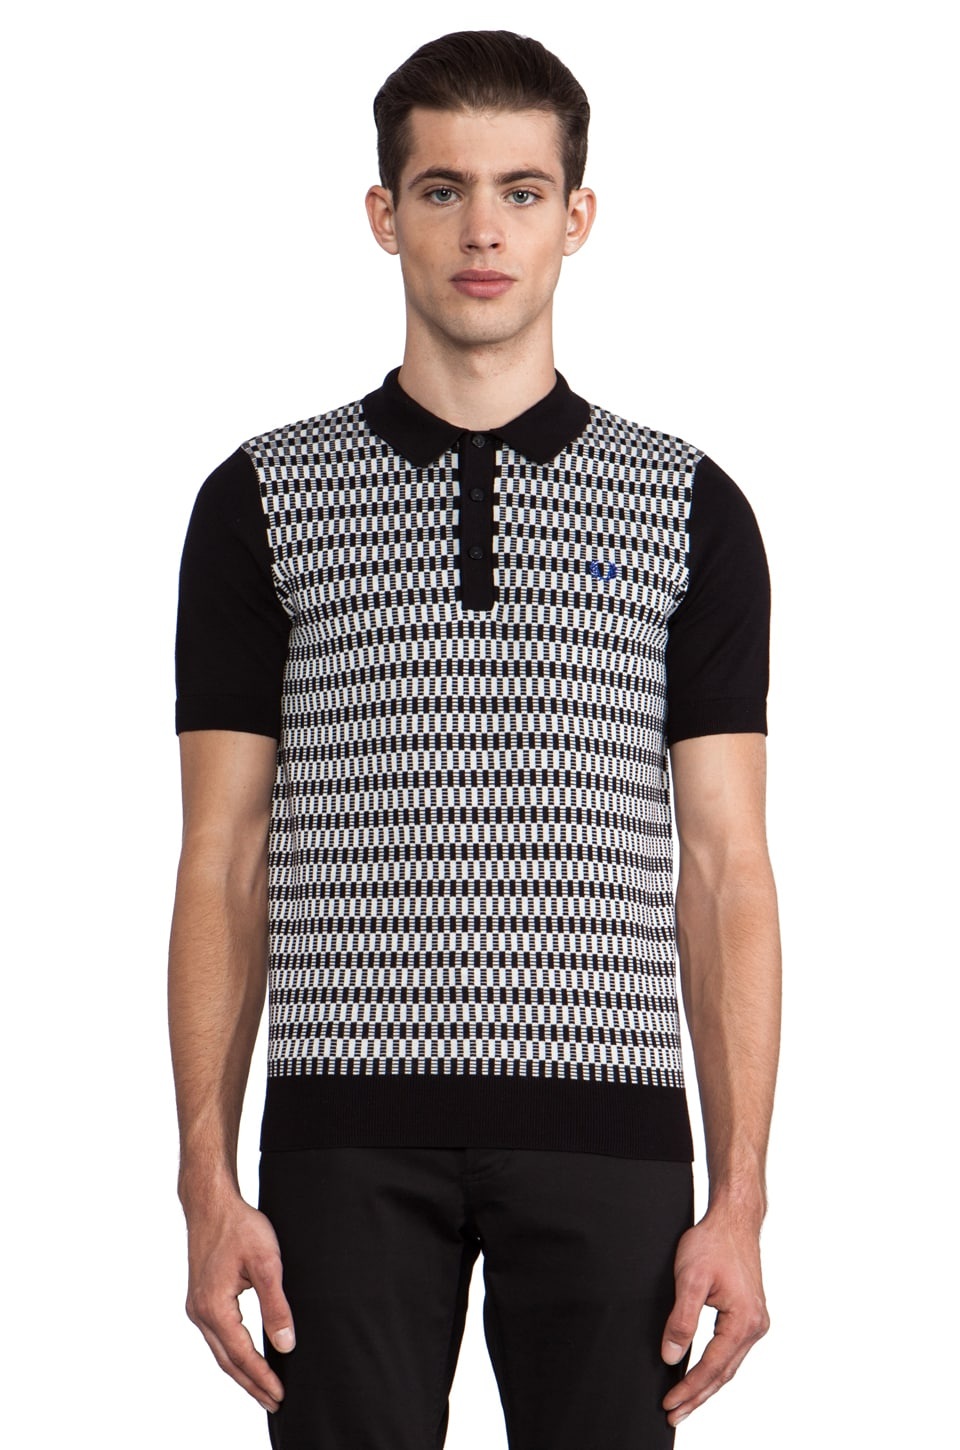 Fred Perry 45's Knitted Polo in Black